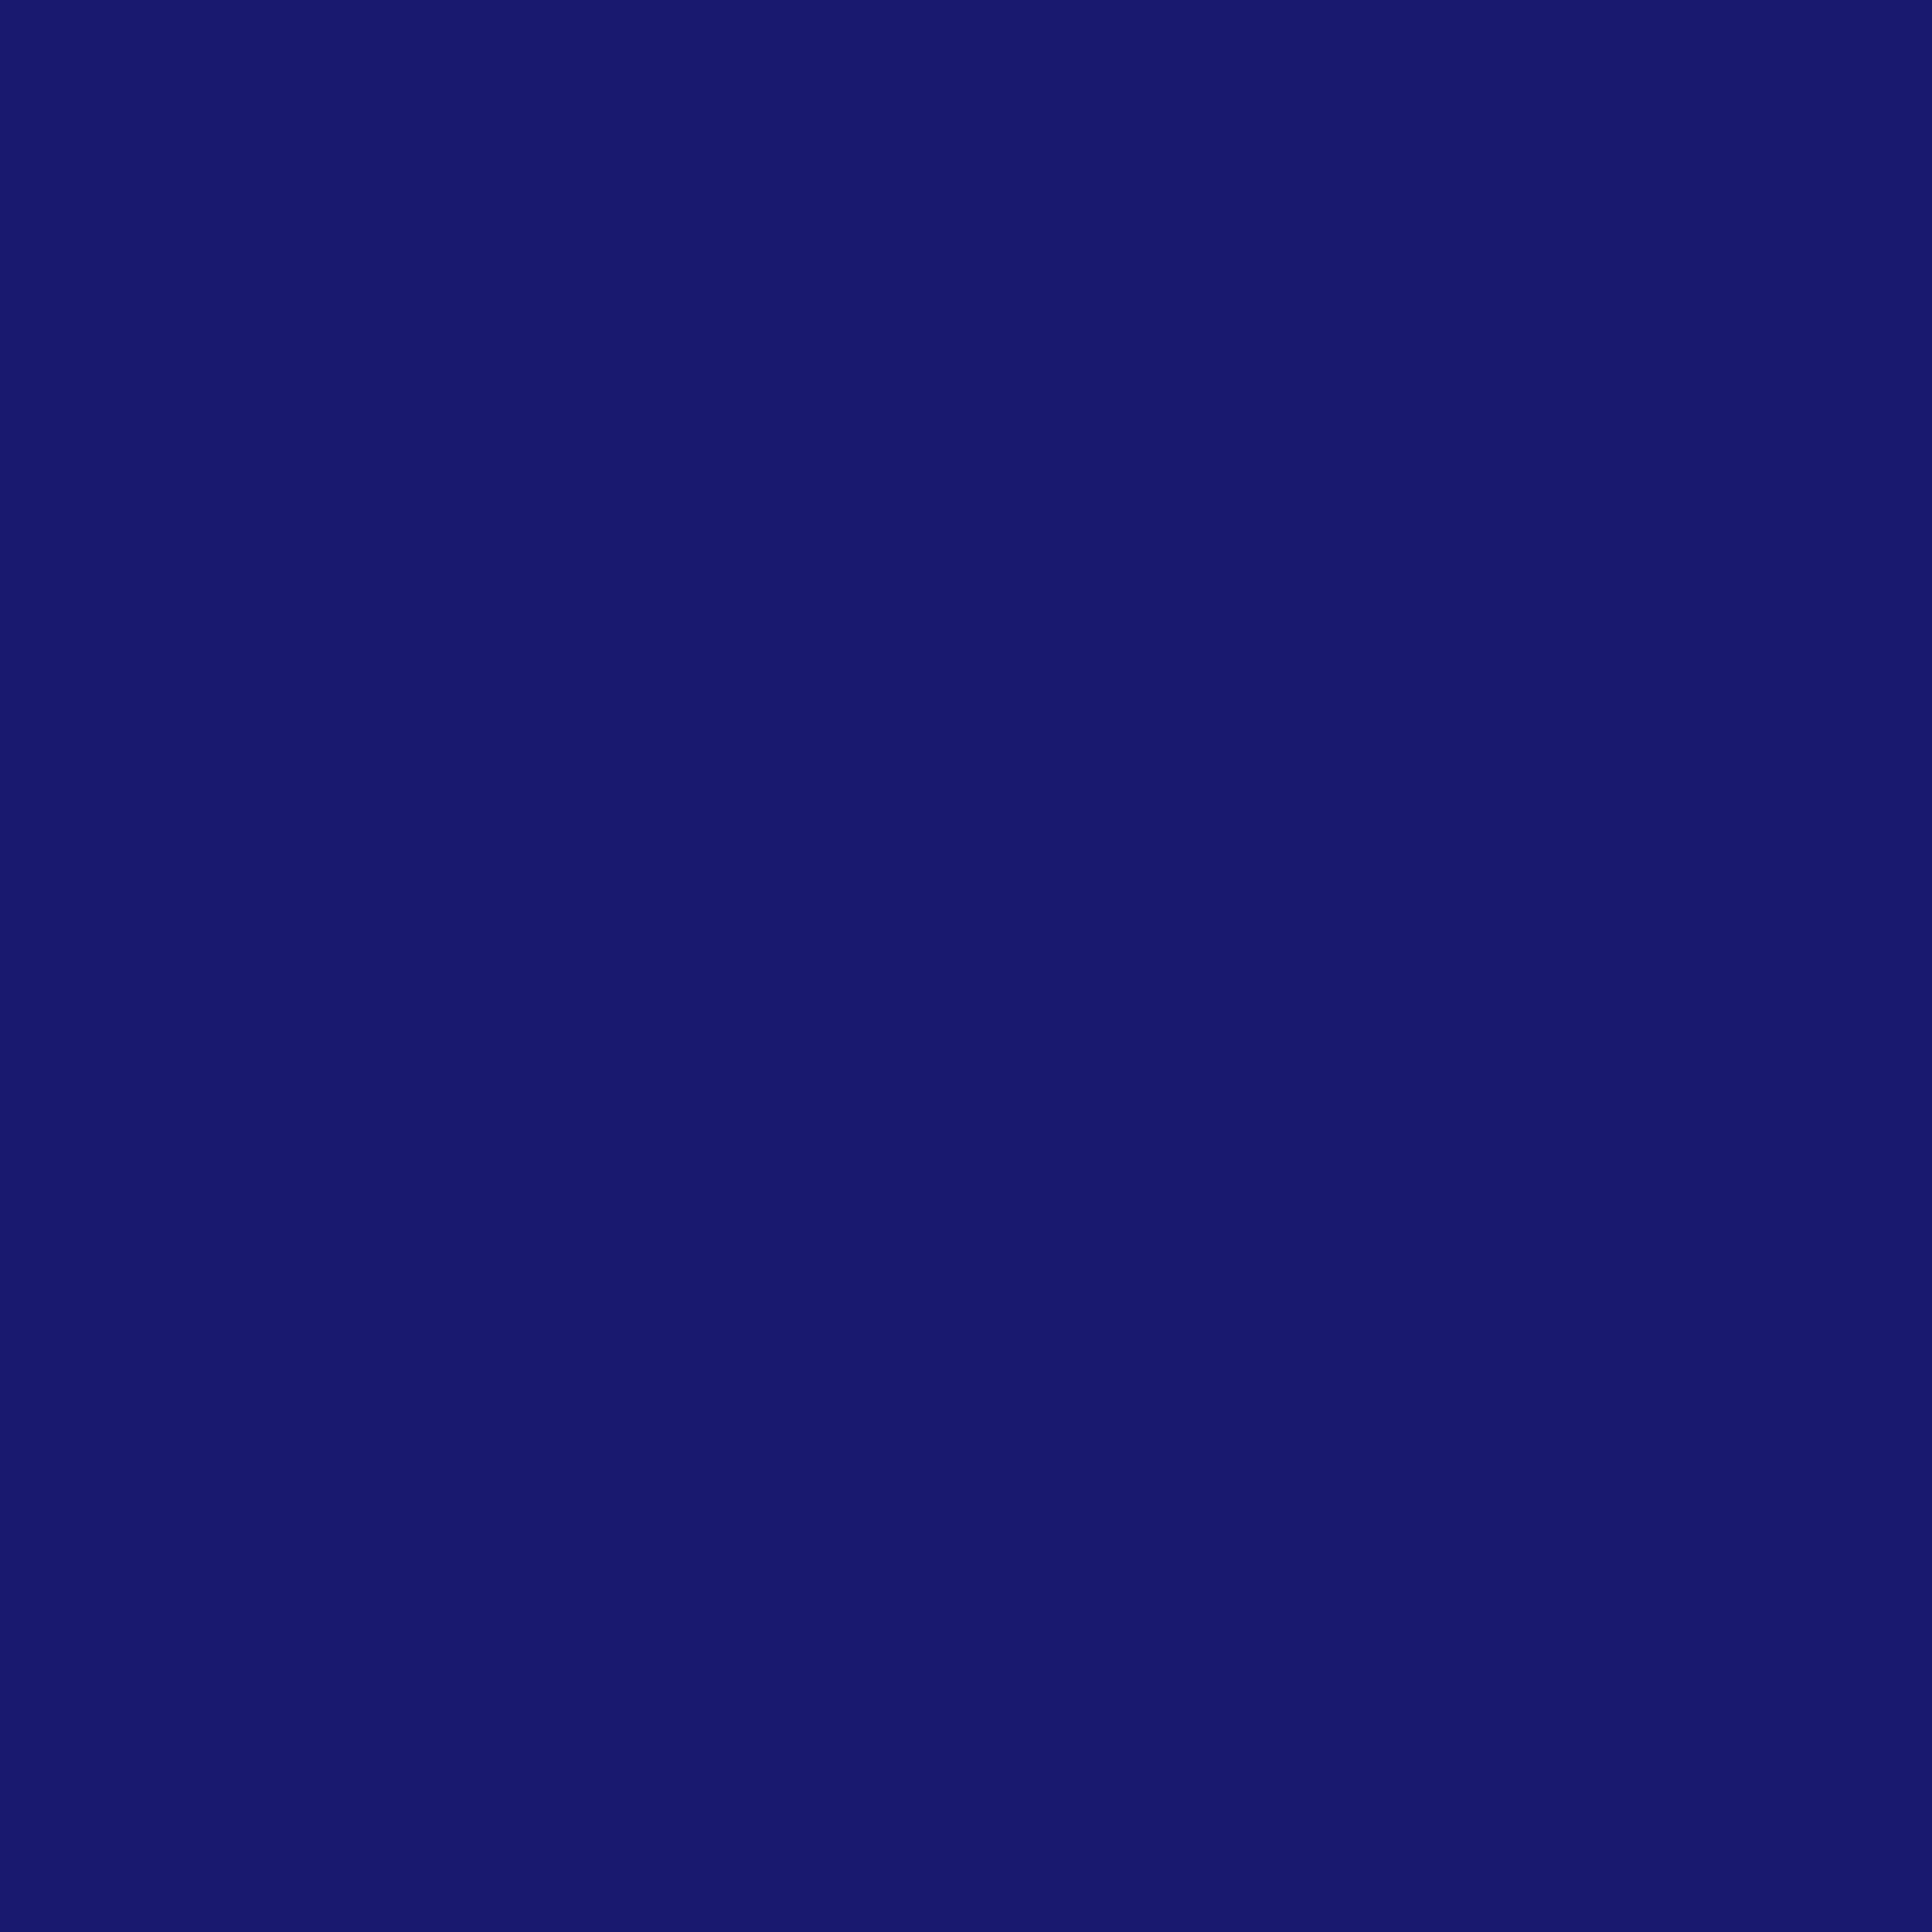 2048x2048 Midnight Blue Solid Color Background